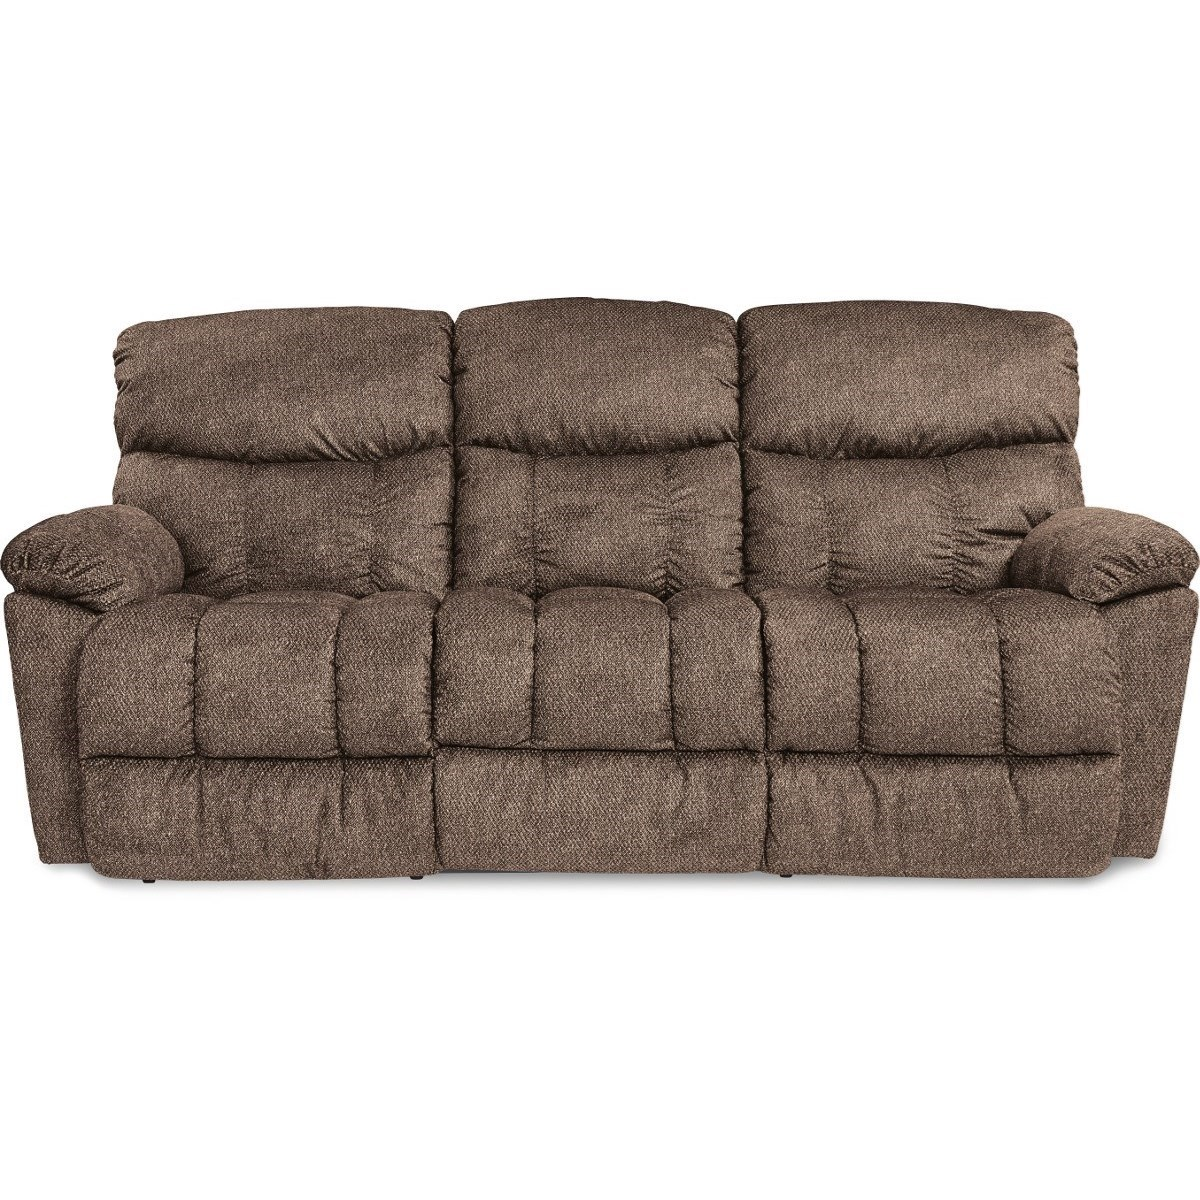 La Z Boy Morrison Casual Reclining Sofa Godby Home